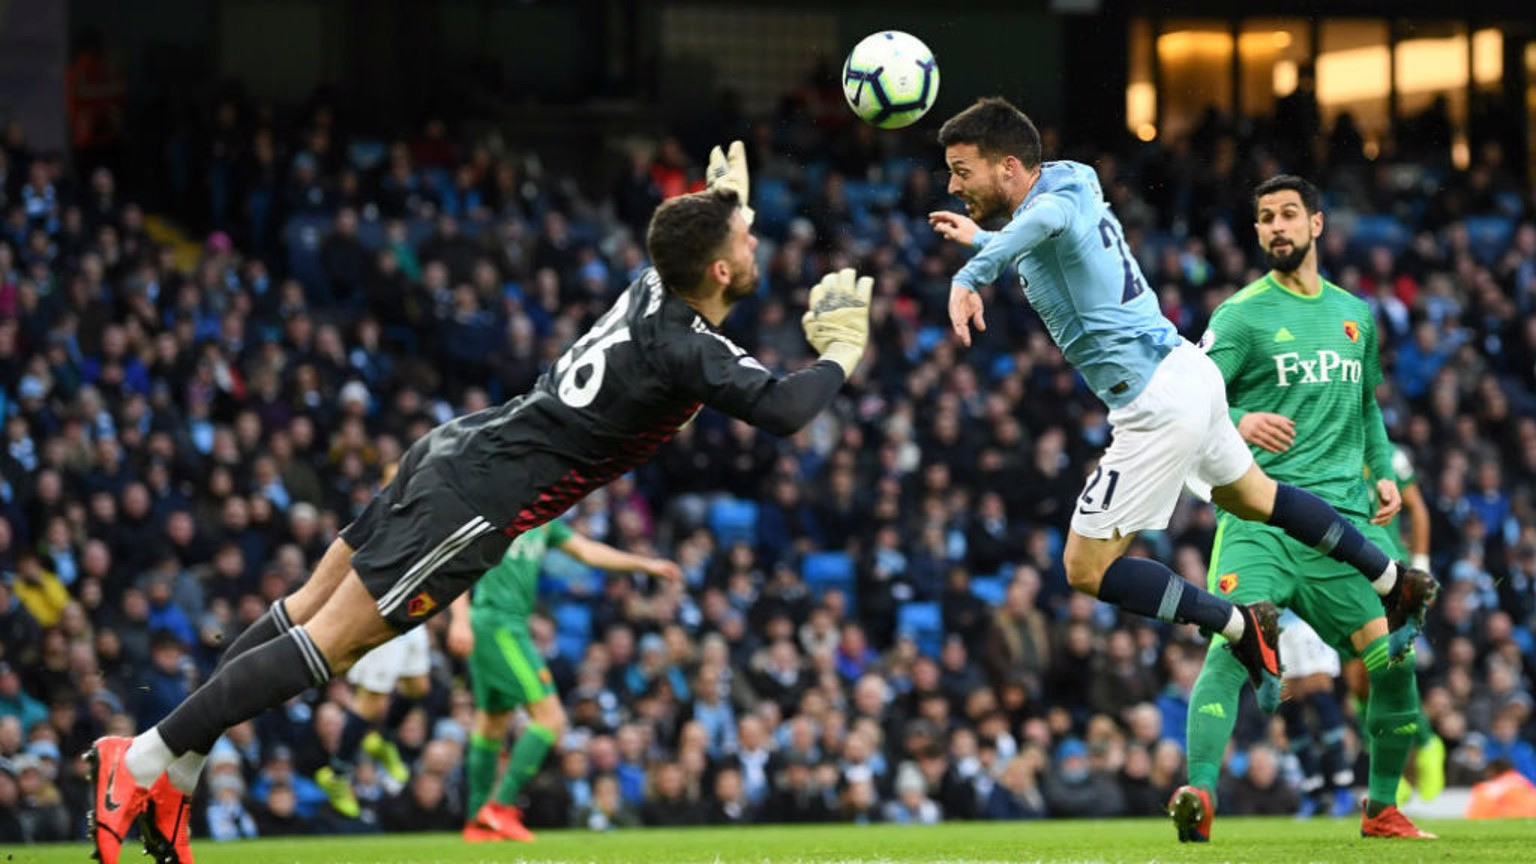 CLOSE! David Silva's glancing header evades Ben Foster but also the Watford goal